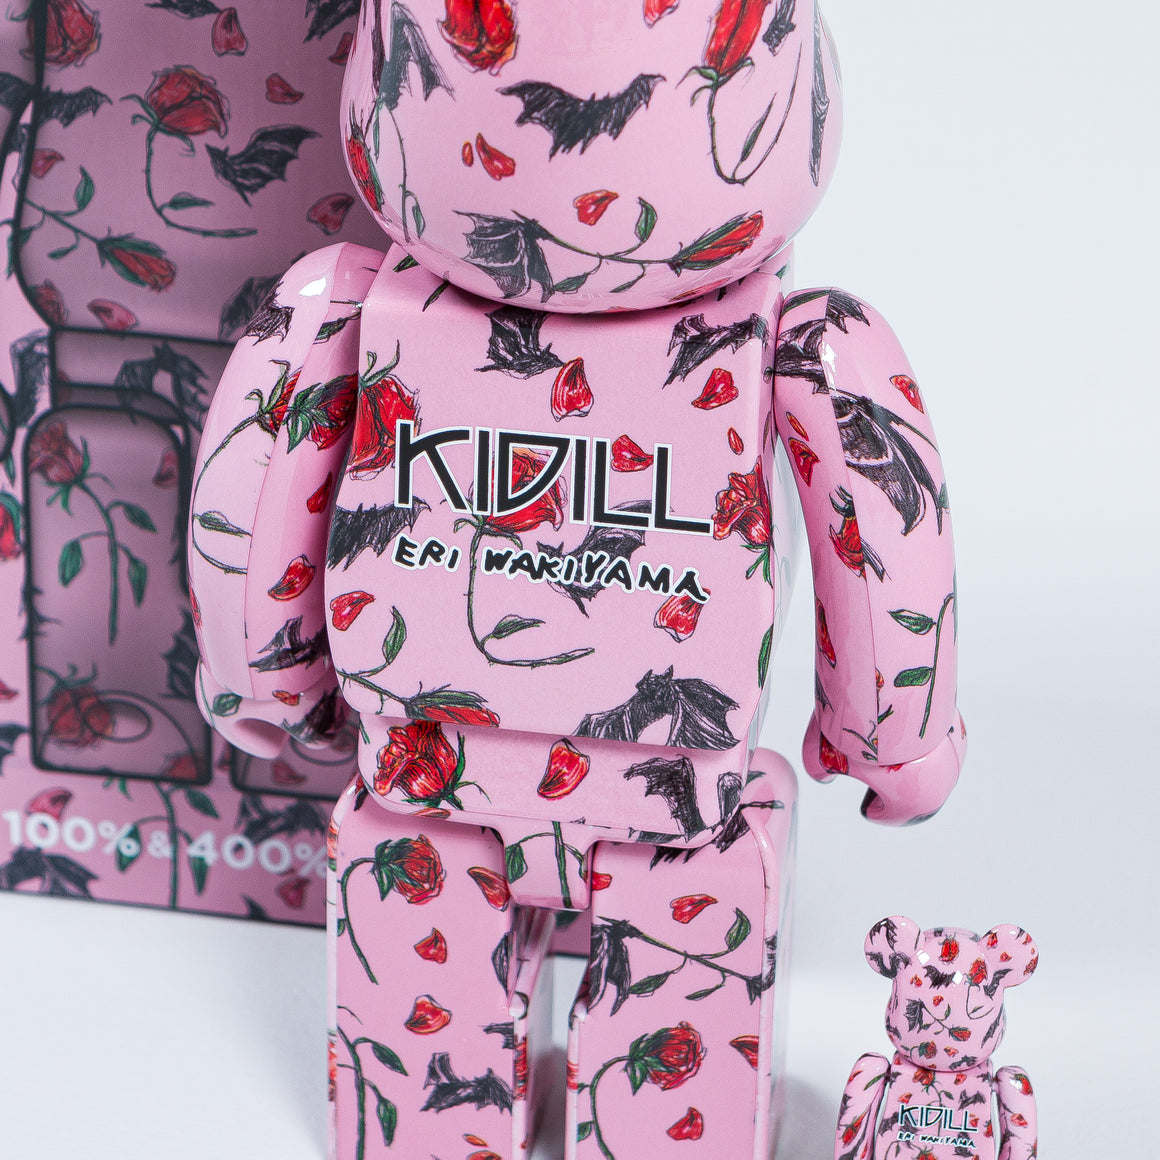 Medicom Toy - Be@rbrick 400% - Kidill Pink - Up There